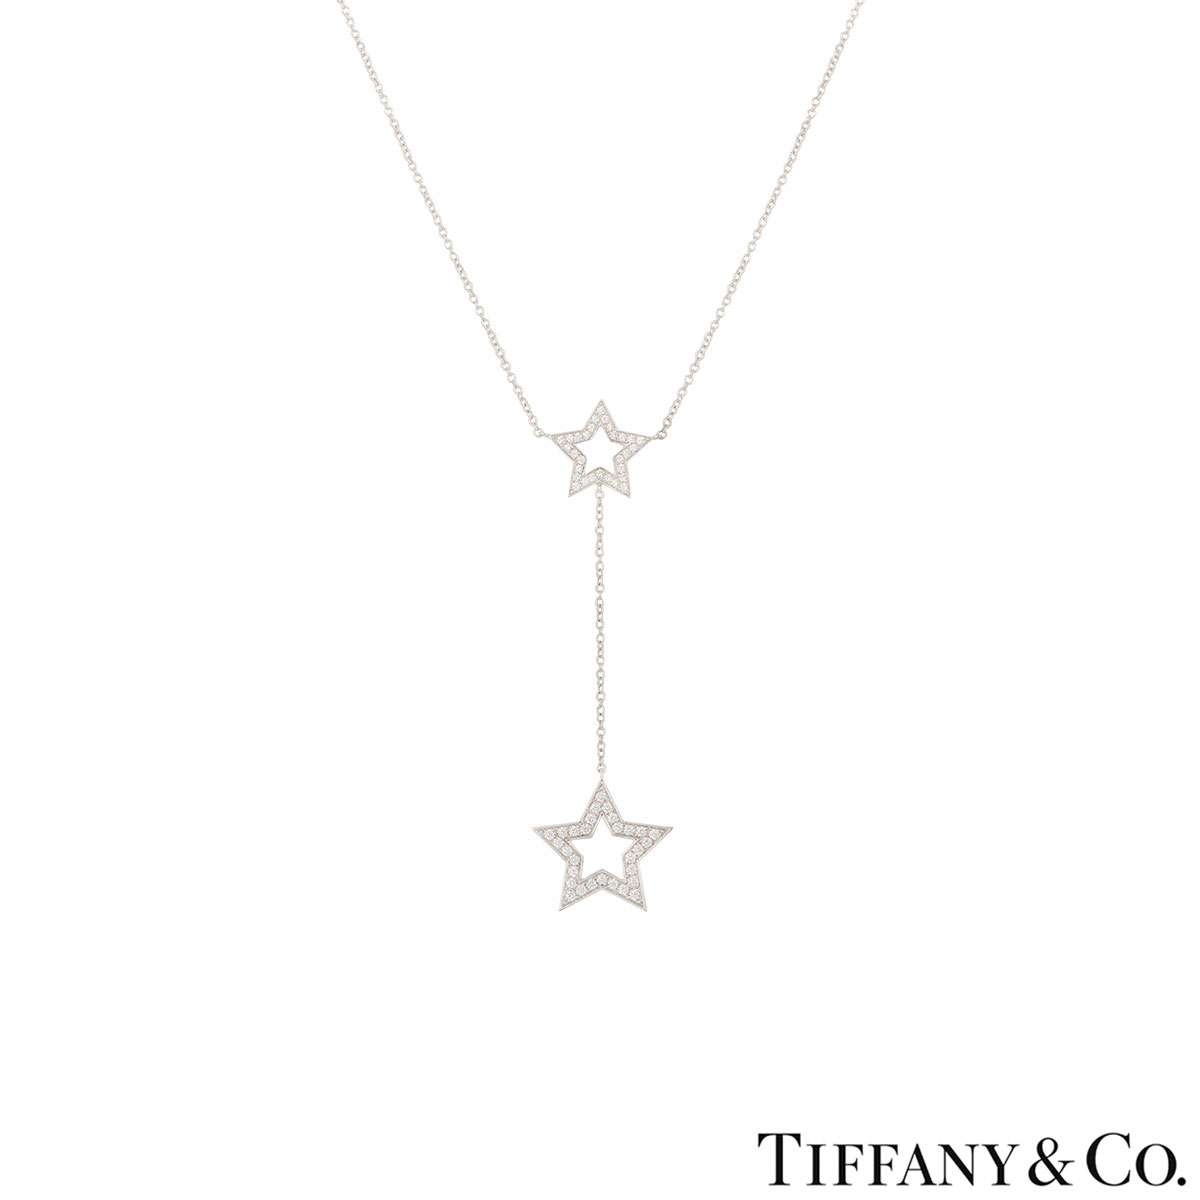 af685db15 Tiffany & Co. Platinum Diamond Set Star Necklace